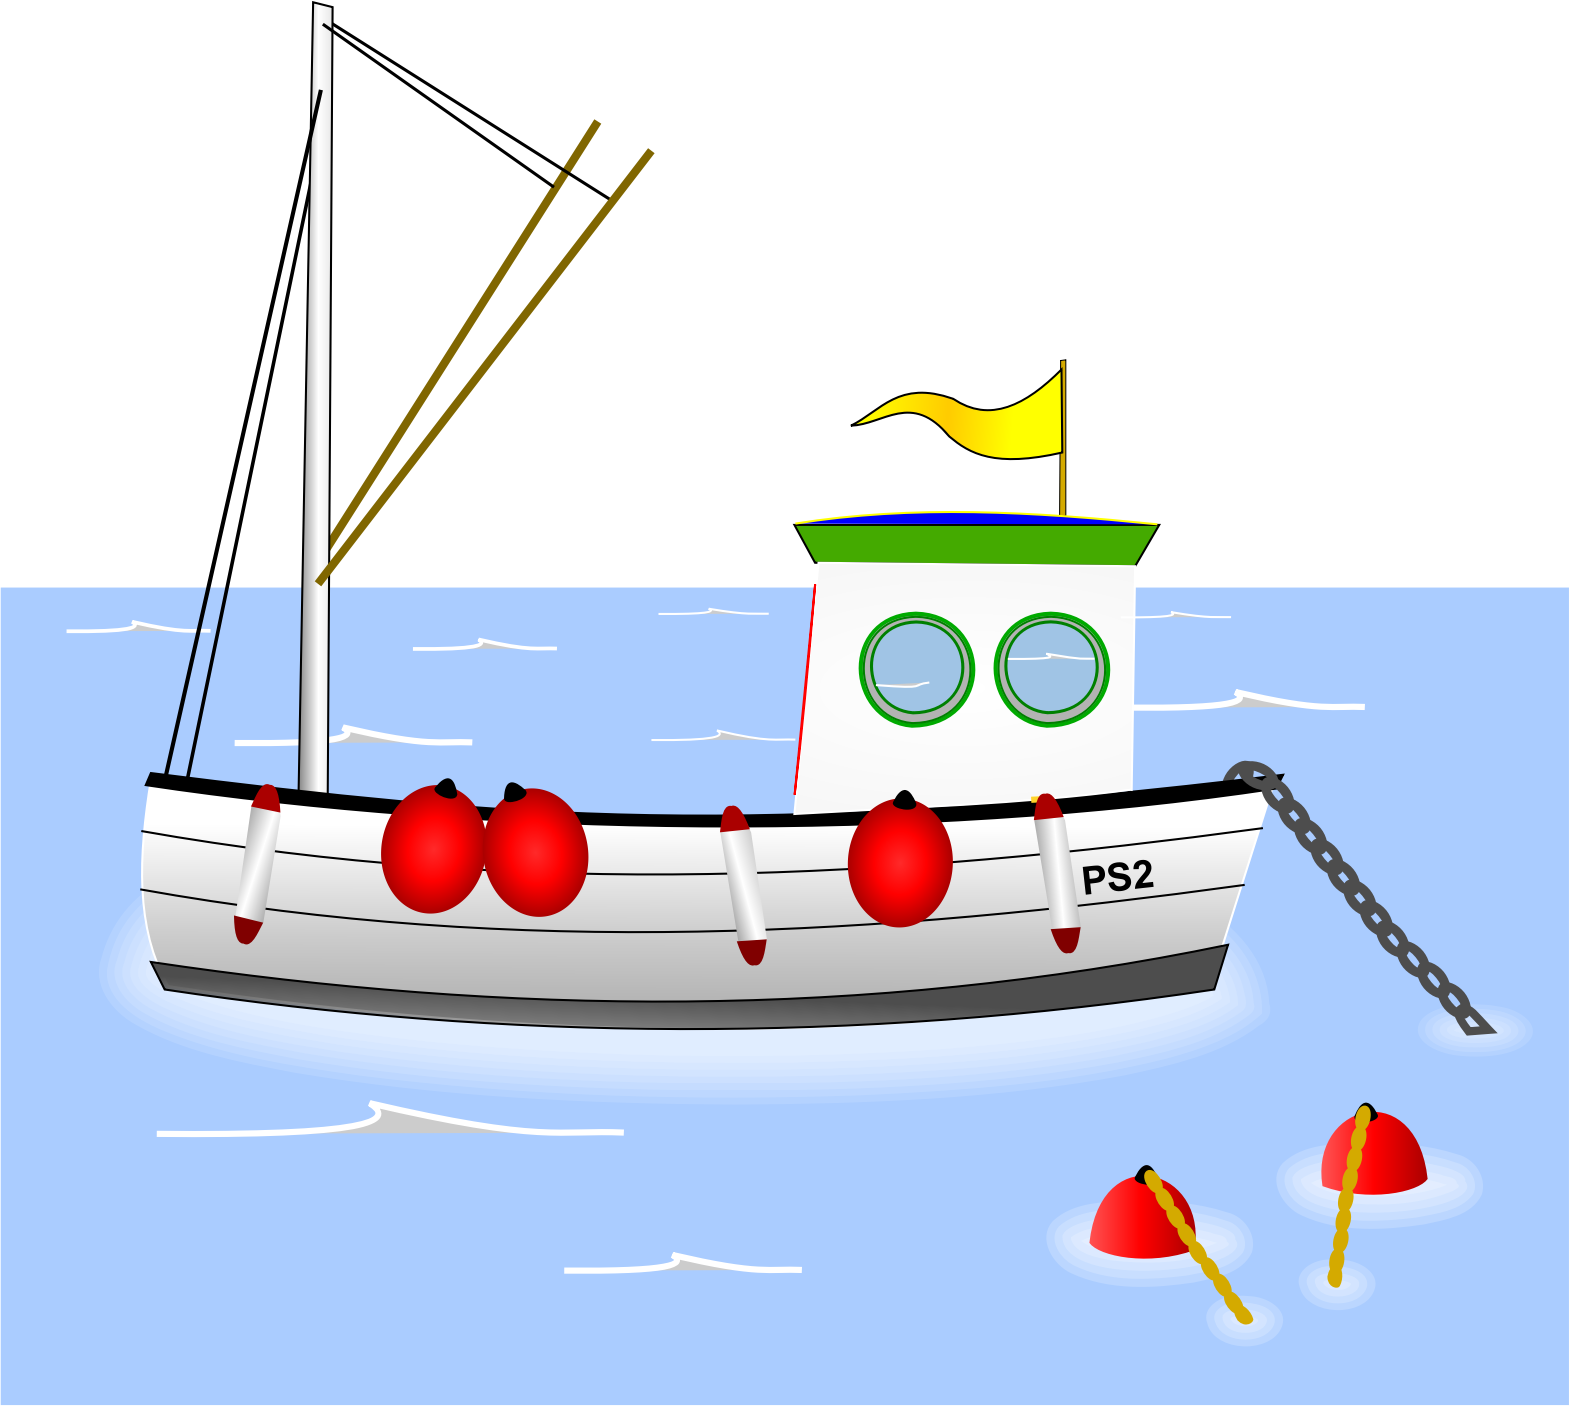 Fishing big image png. Boat clipart old fashioned